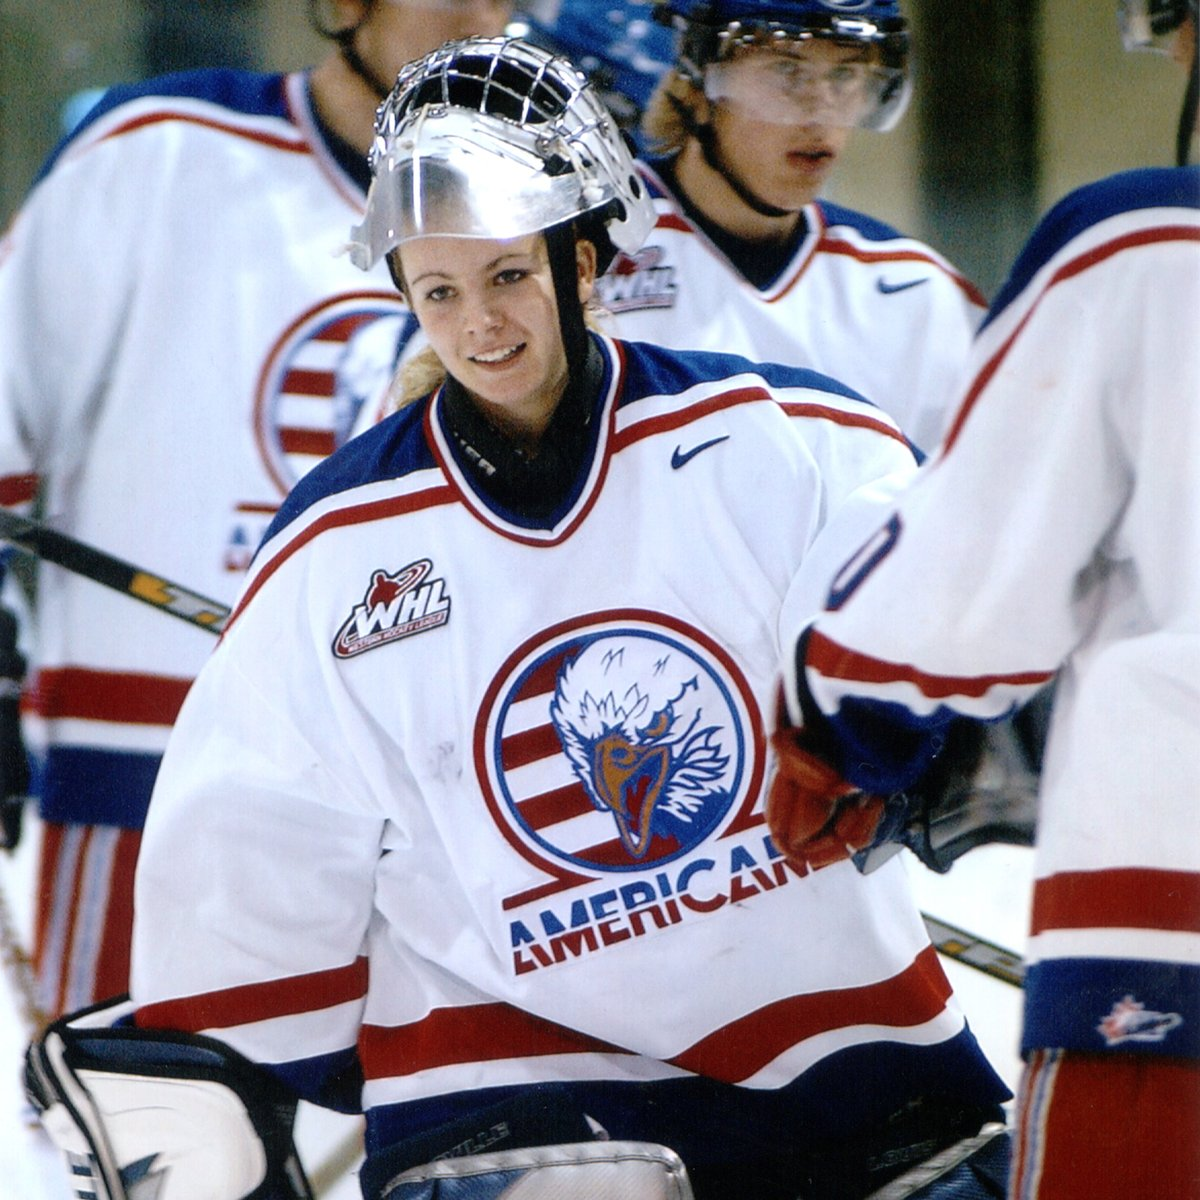 On this day 18 years ago, @ShannonSzabados became the first and only woman to play a @theWHL regular season game as she made a relief appearance for the Americans.  #AmsNation | #WomenInSports https://t.co/123MuzTBL8